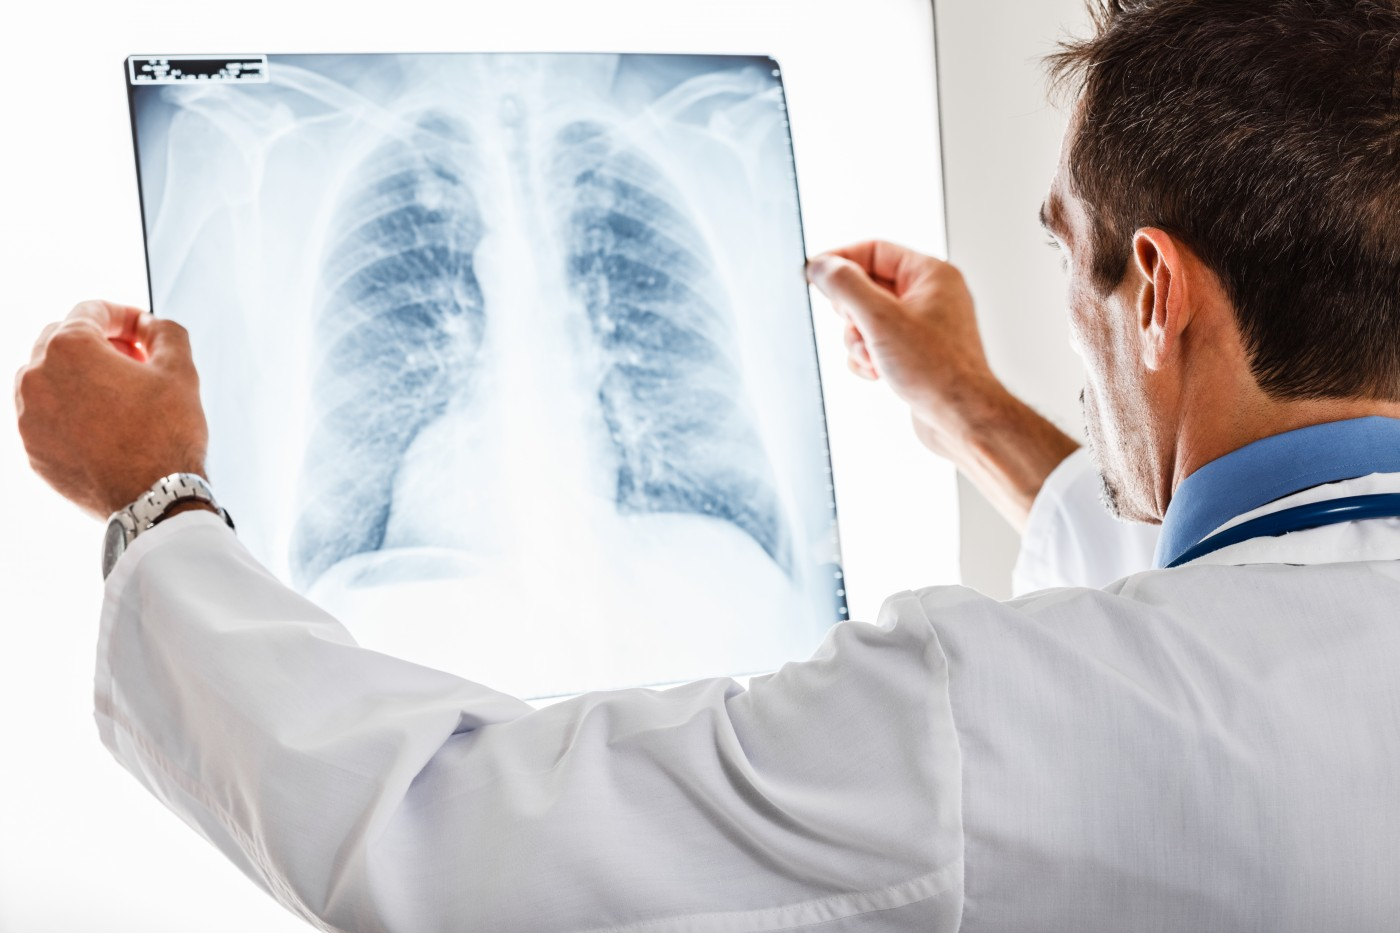 Implementing Lung-RADS Guidelines May Result in More Effective Lung Cancer Screening